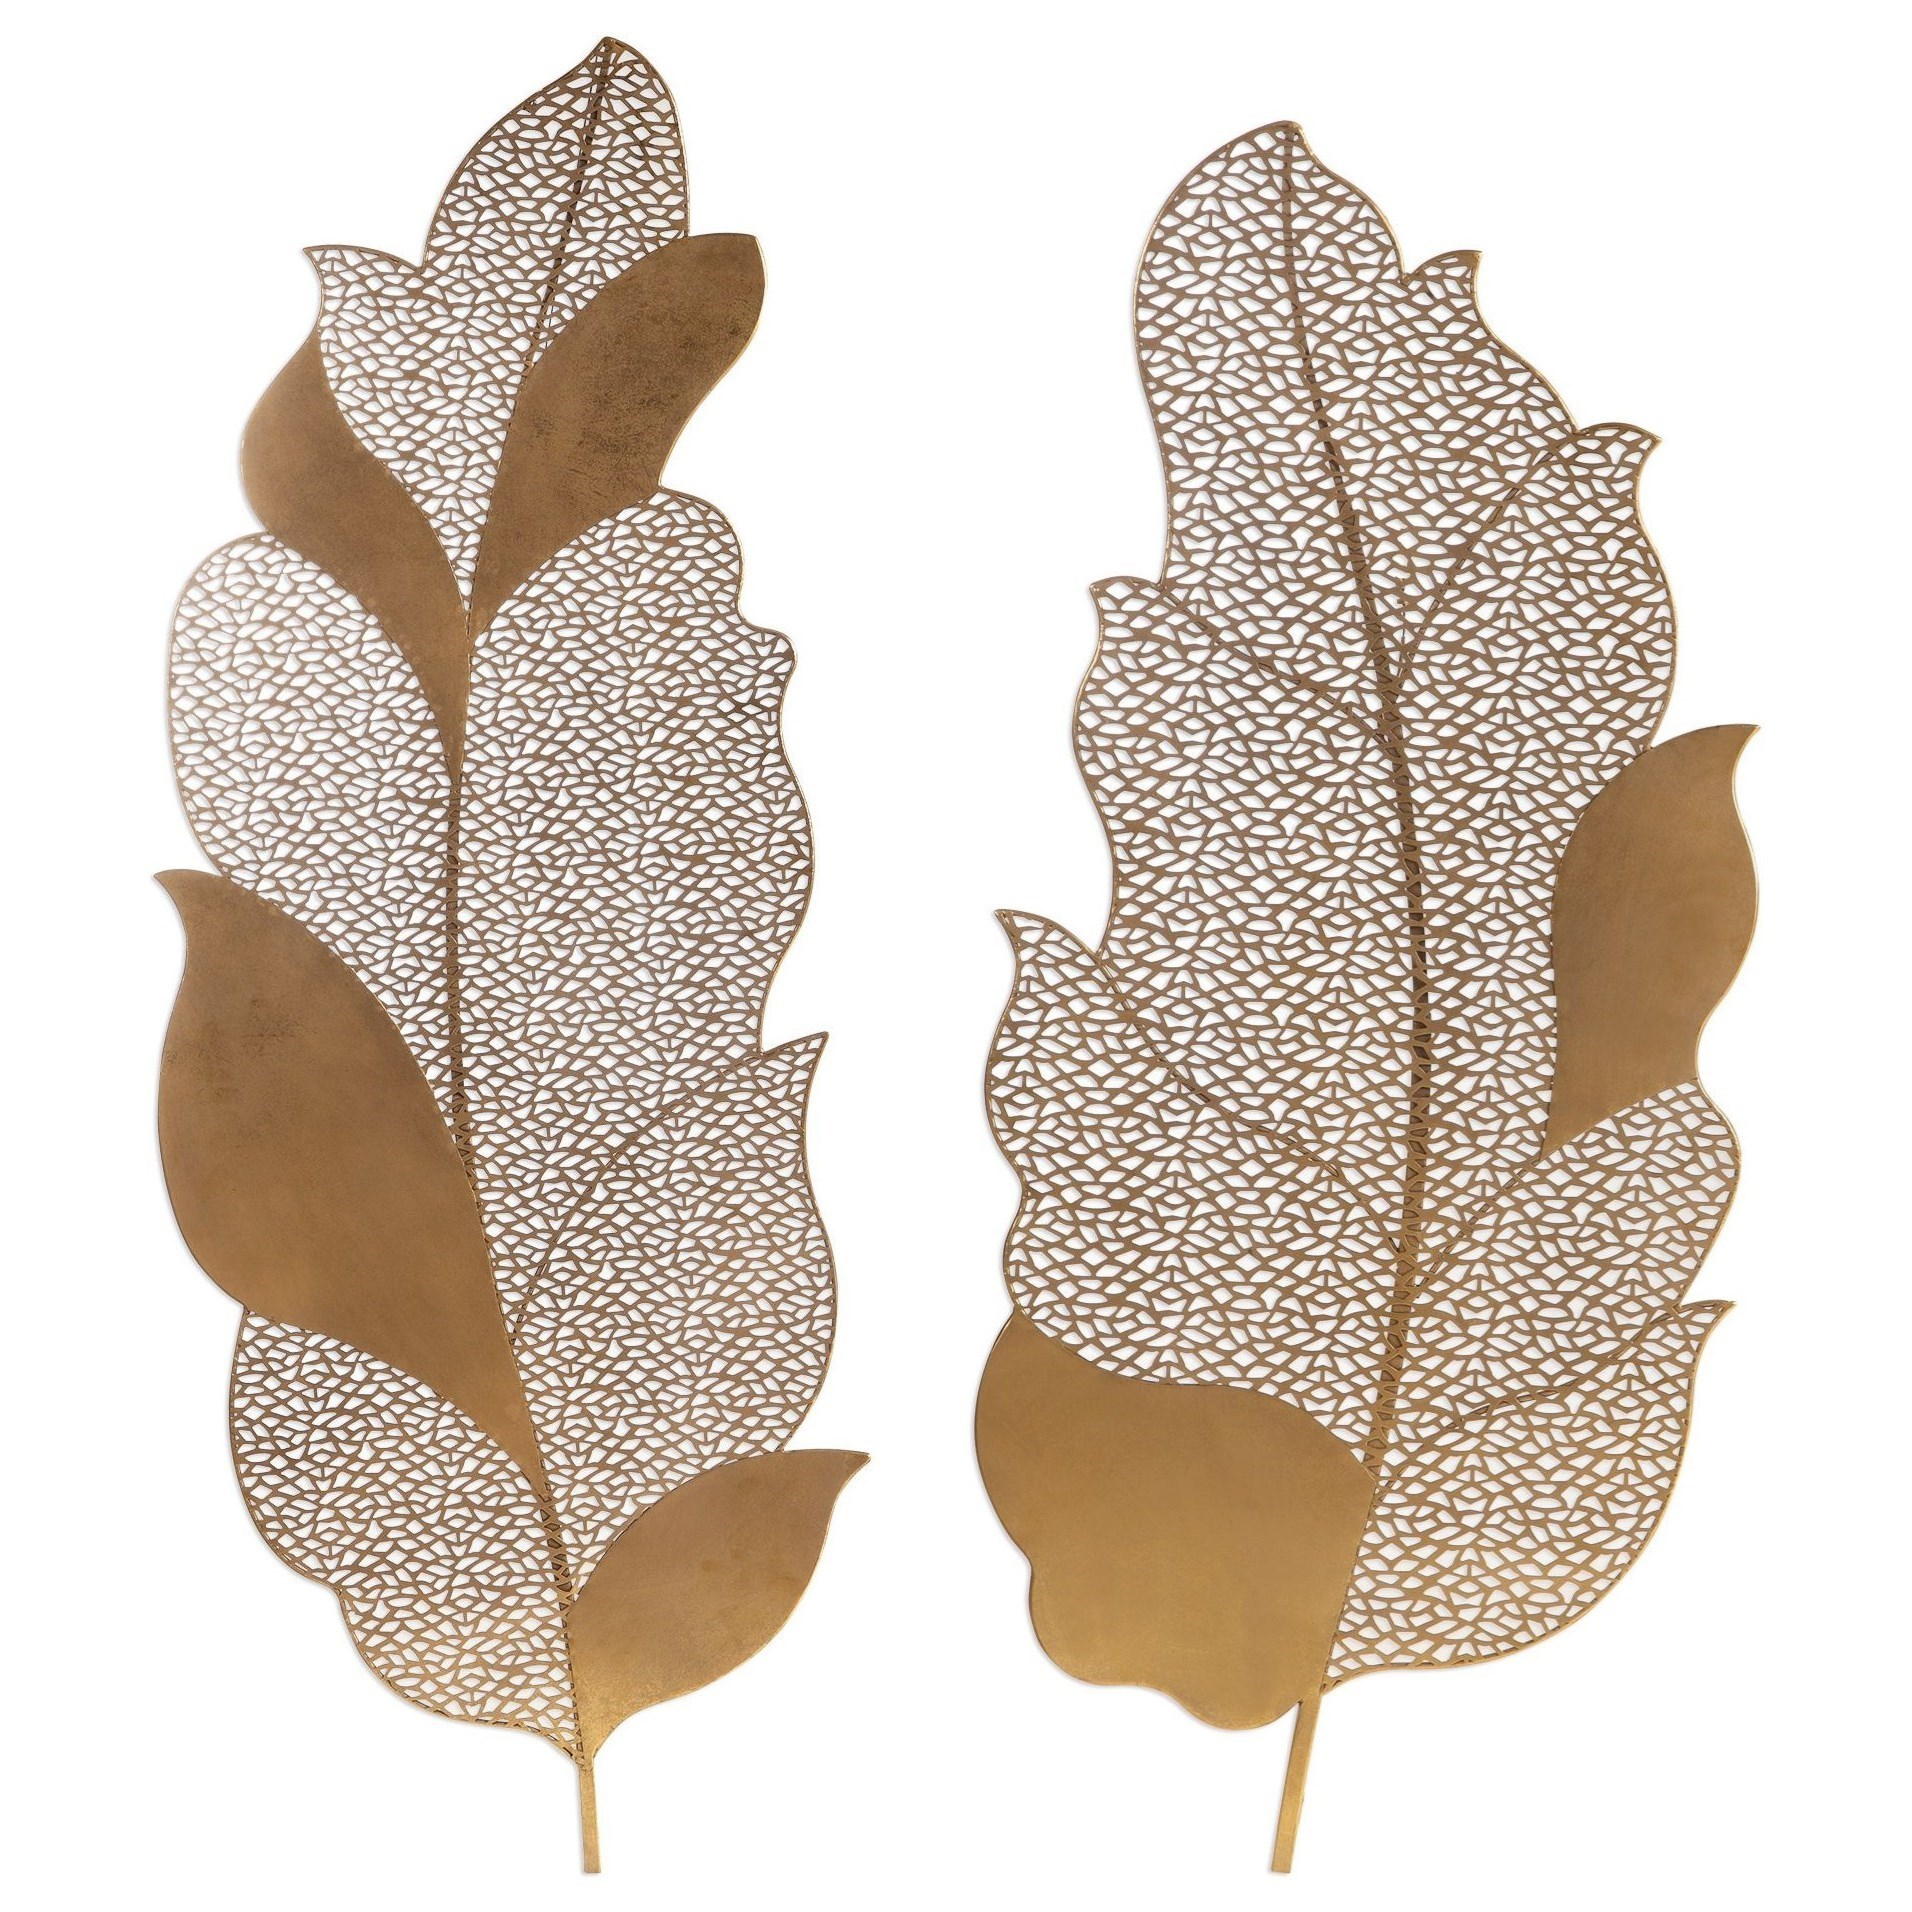 uttermost wall decor uttermost alternative wall decorautumn lace leaf art s2 decor autumn